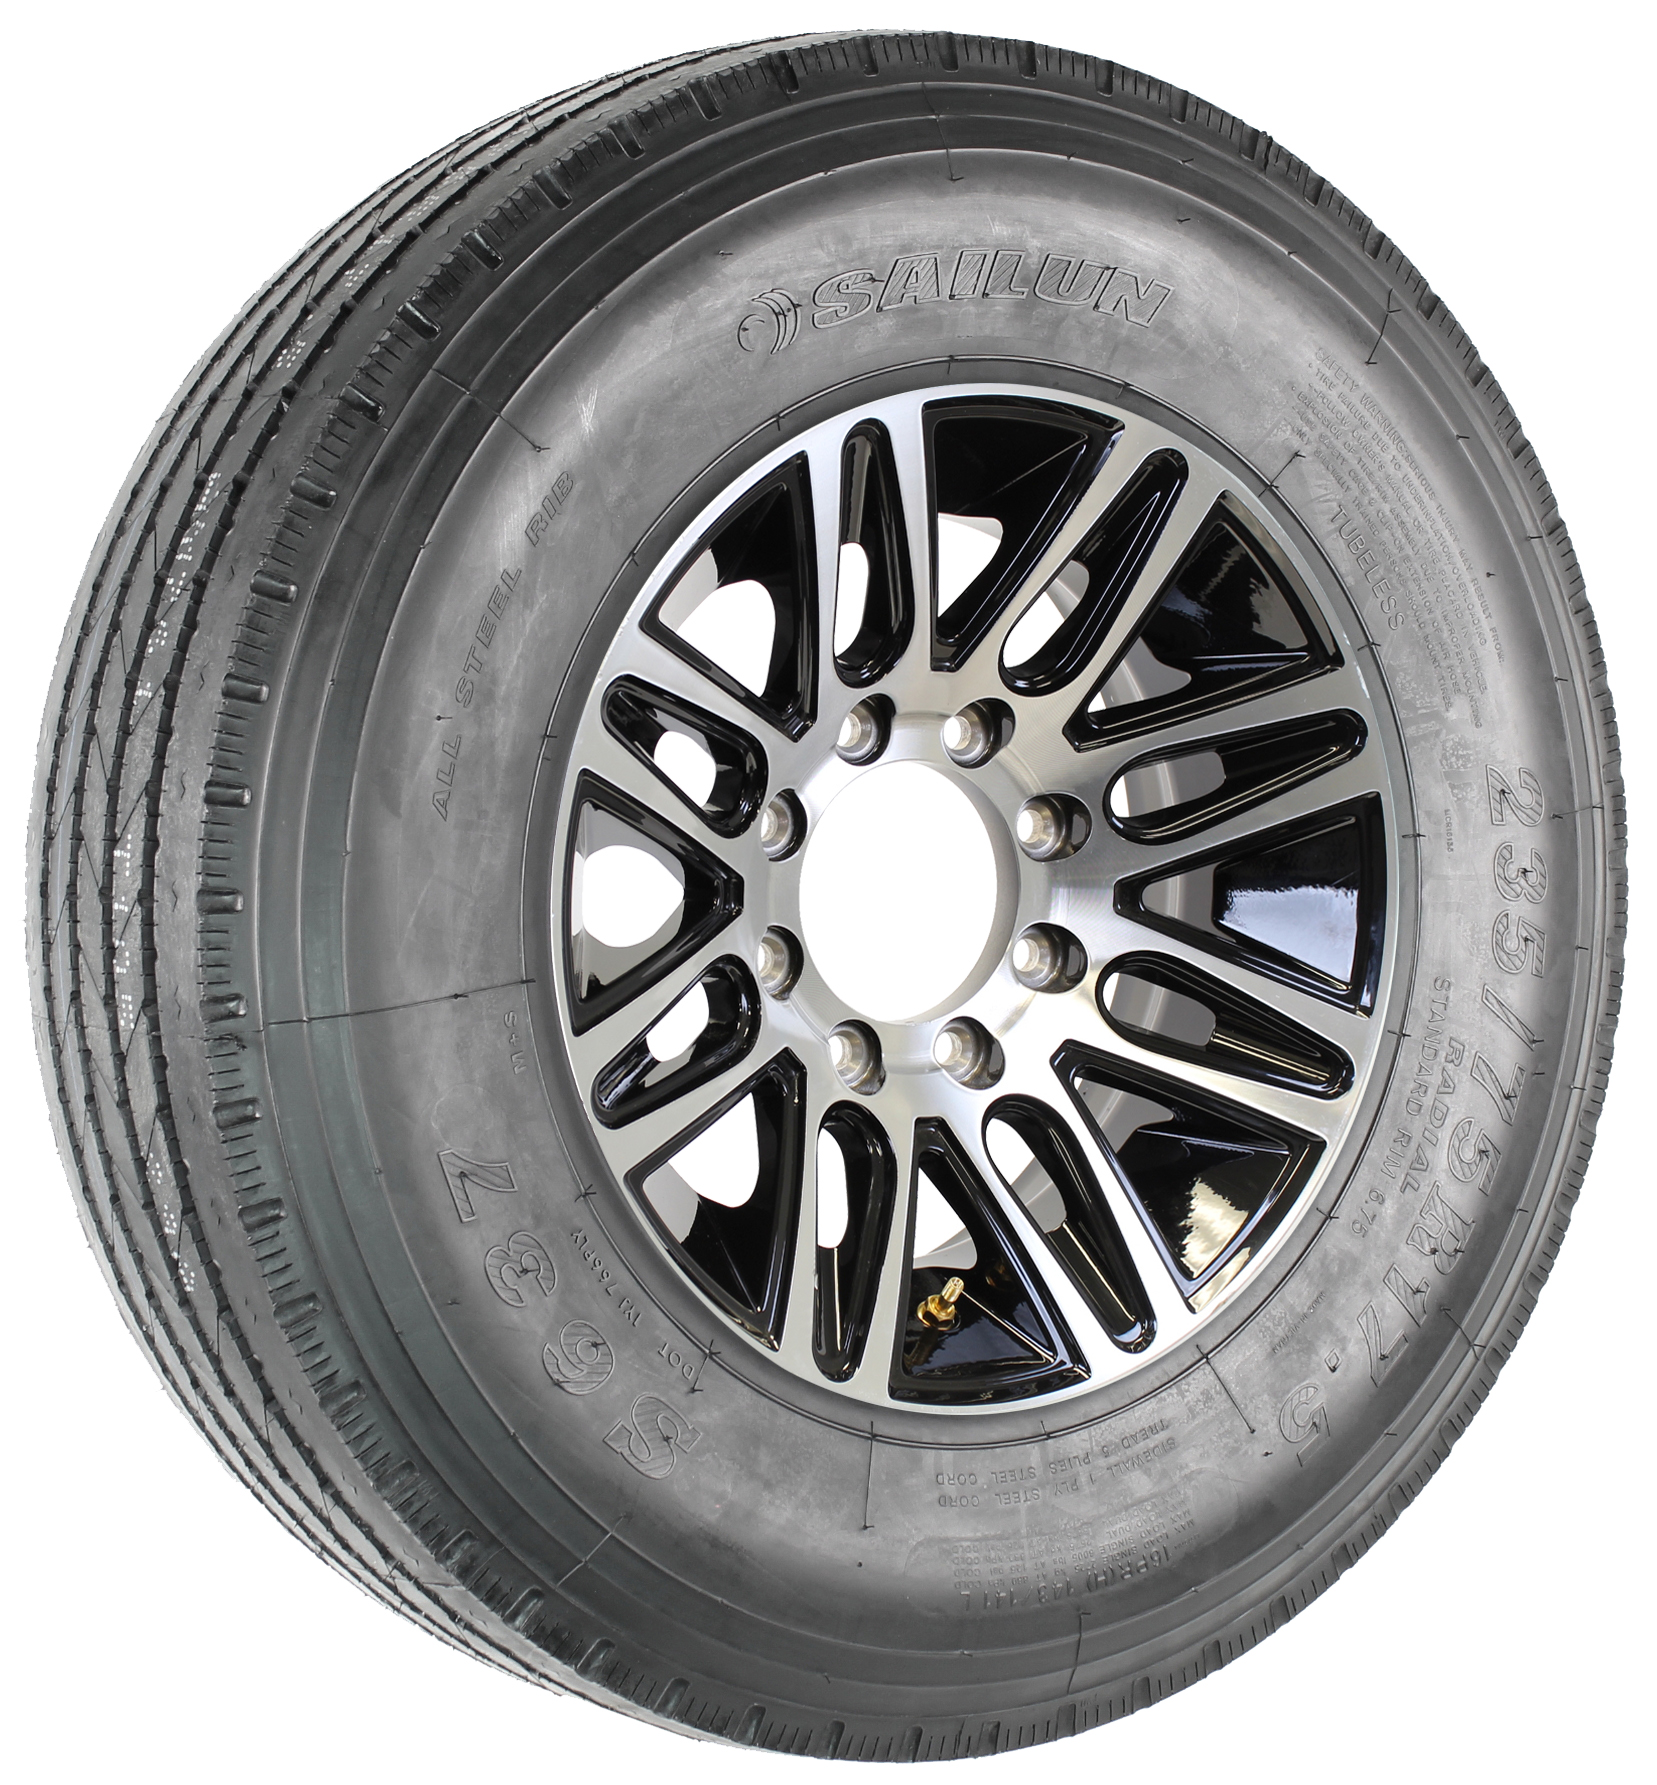 "Sailun 235/75R17.5 LRH Radial tire on 17.5"" 8-Lug Pinnacle Black Aluminum Assembly Image"